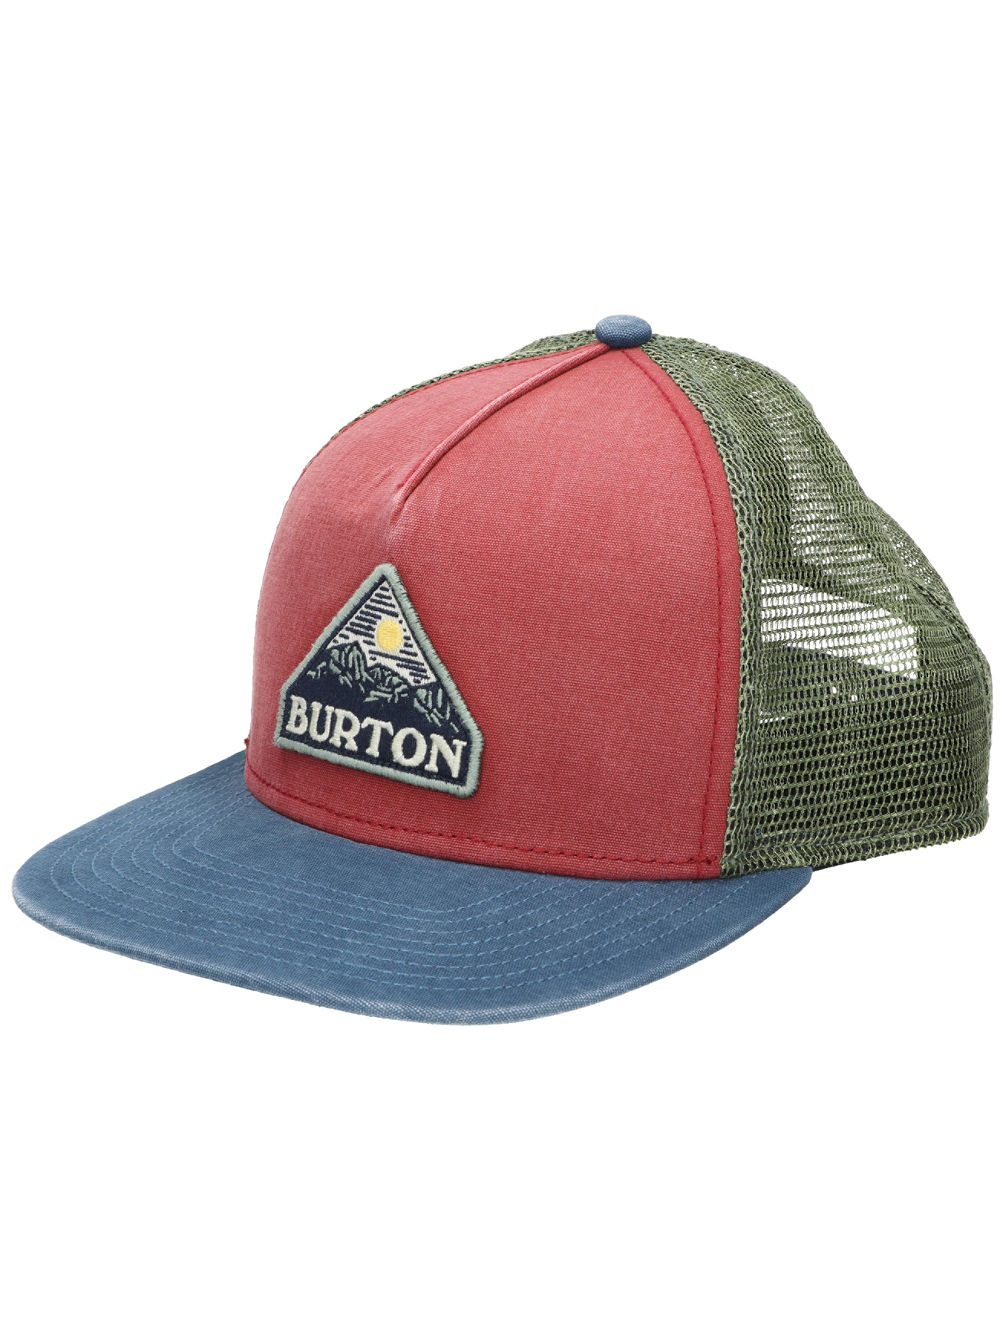 282ddc75510 Buy Burton Marble Head Cap online at Blue Tomato